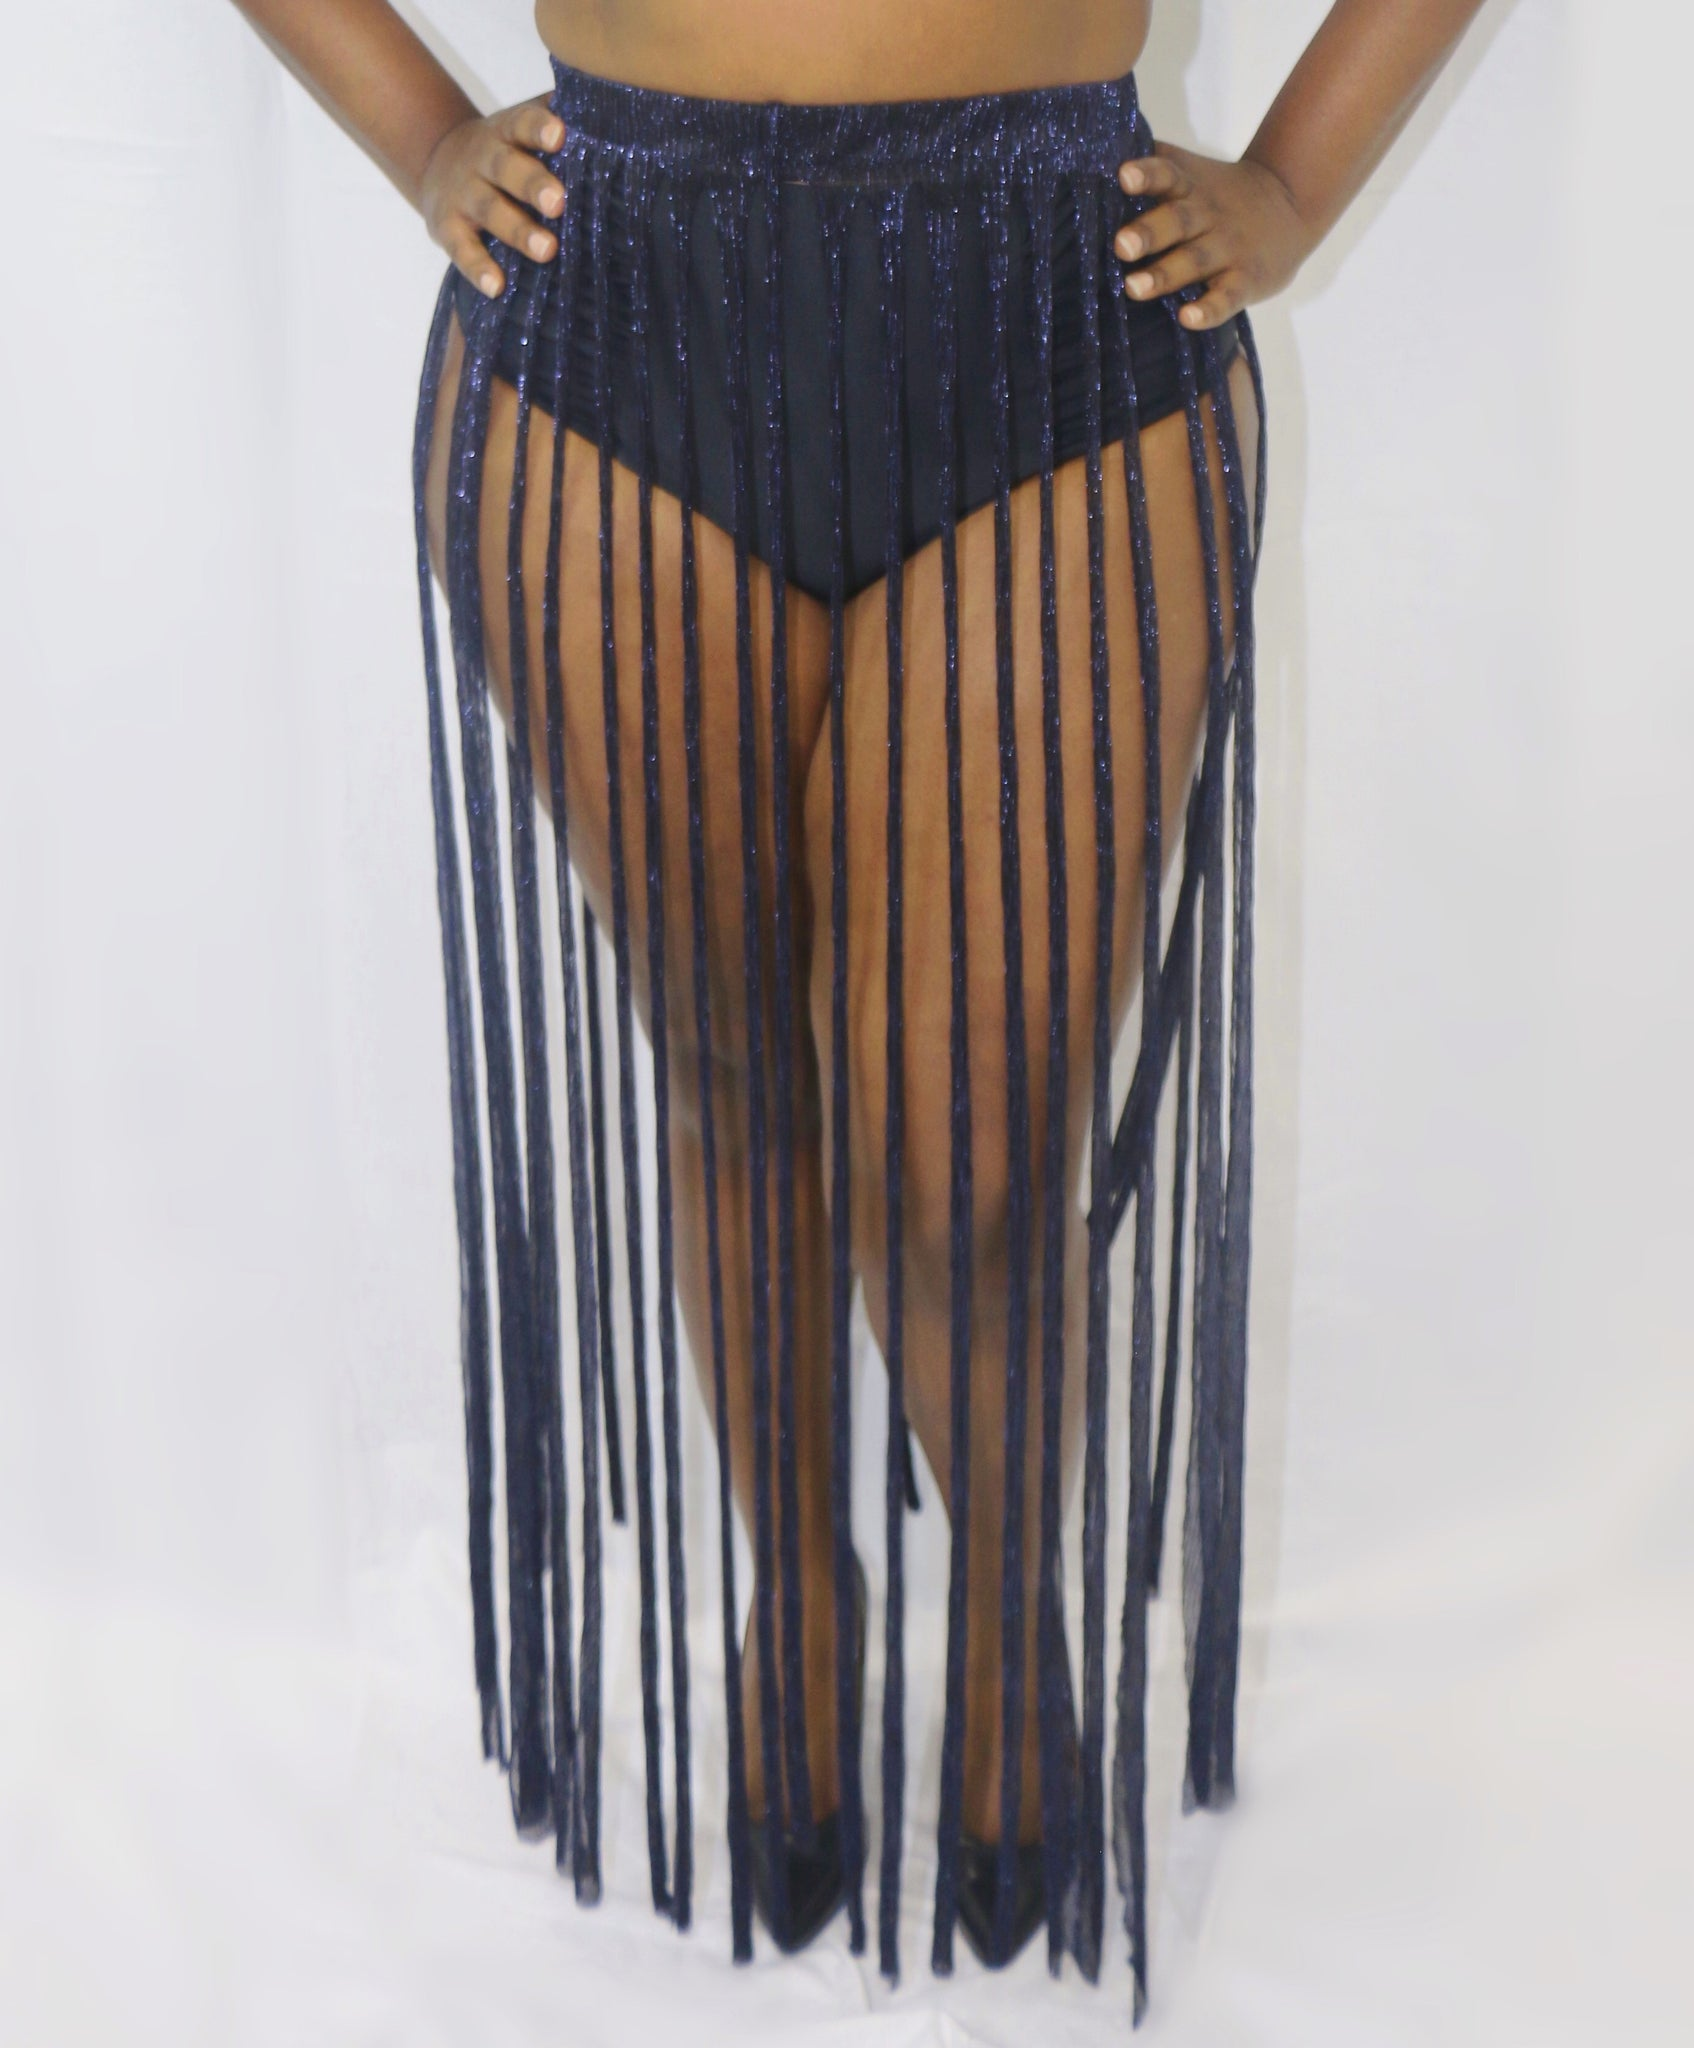 Navy Fringe Metallic Skirt